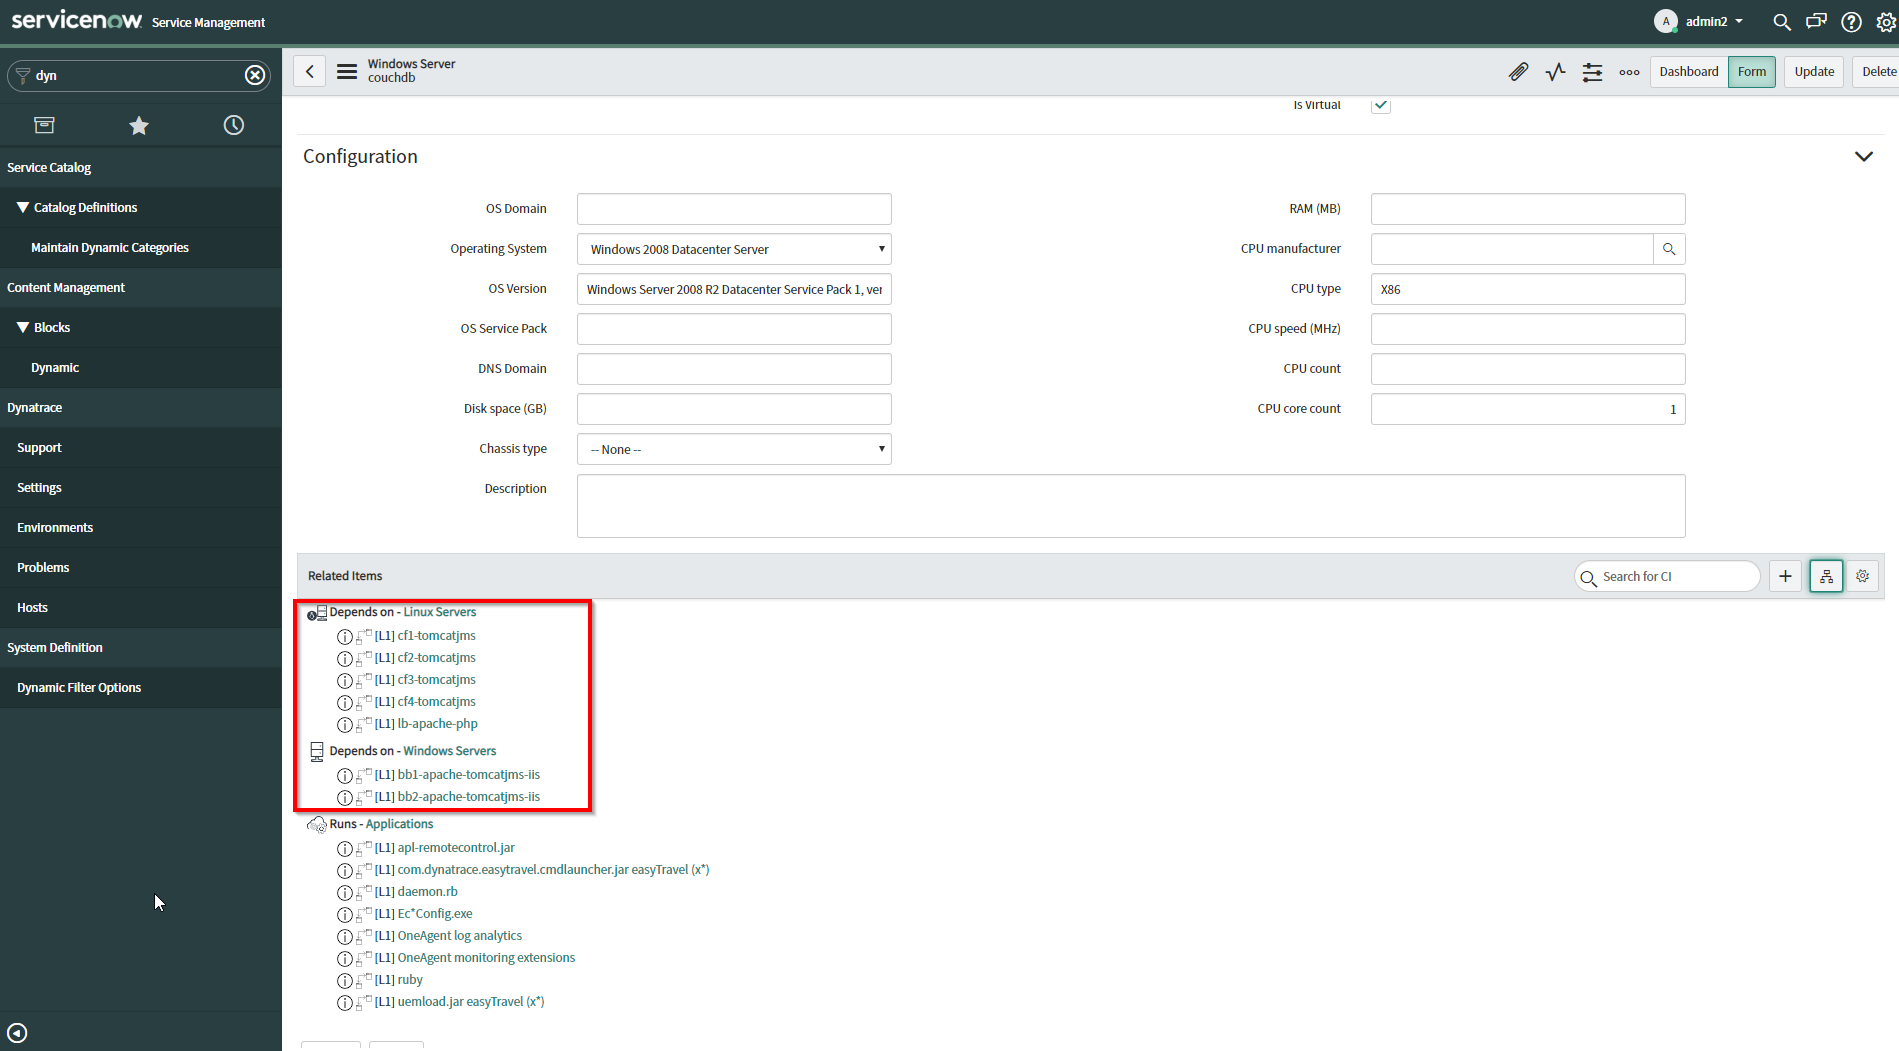 Smartscape host communication relationship shown in ServiceNow